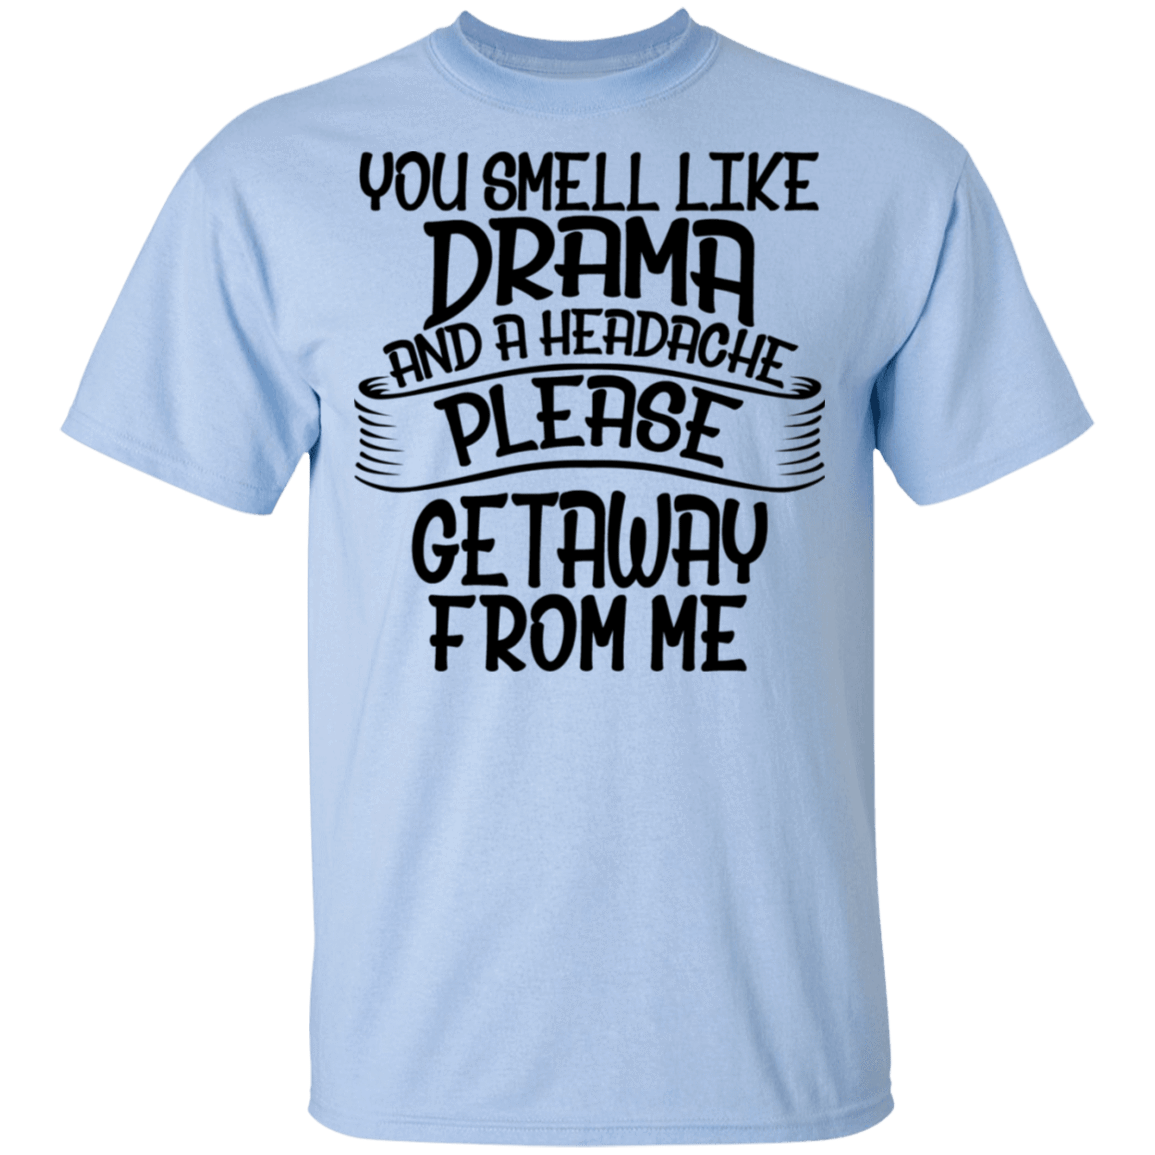 You Smell Like Drama and a Headache Please Get Away From Me T-Shirts, Hoodies, Tank 22-9800-80184331-47430 - Tee Ript